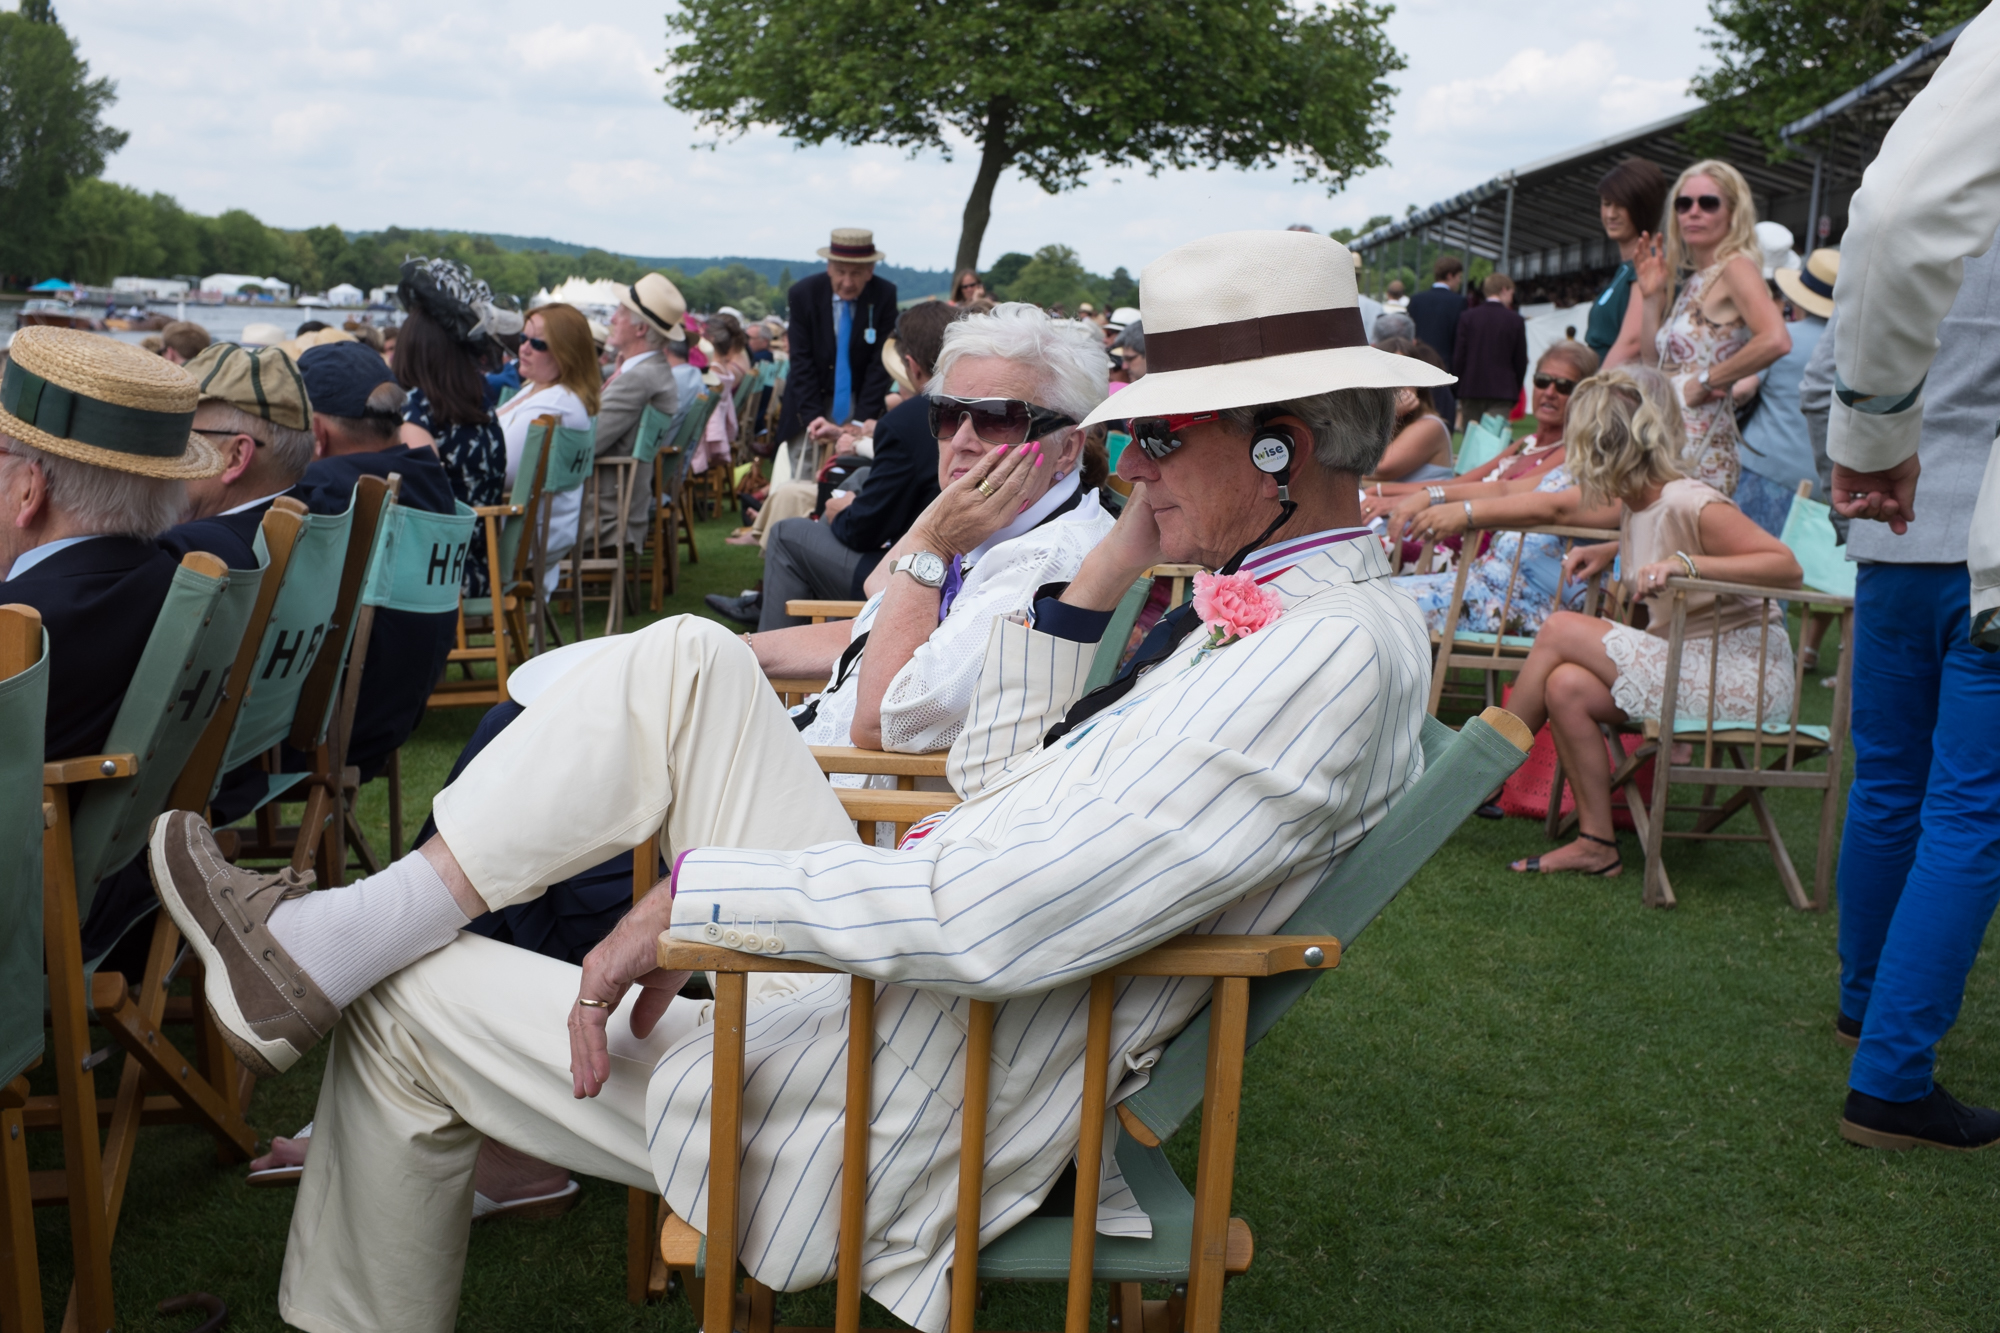 At Henley Royal Regatta, listening to Regatta Radio –a pop-up radio station that broadcasts racing commentary and interviews with athletes throughout the week.